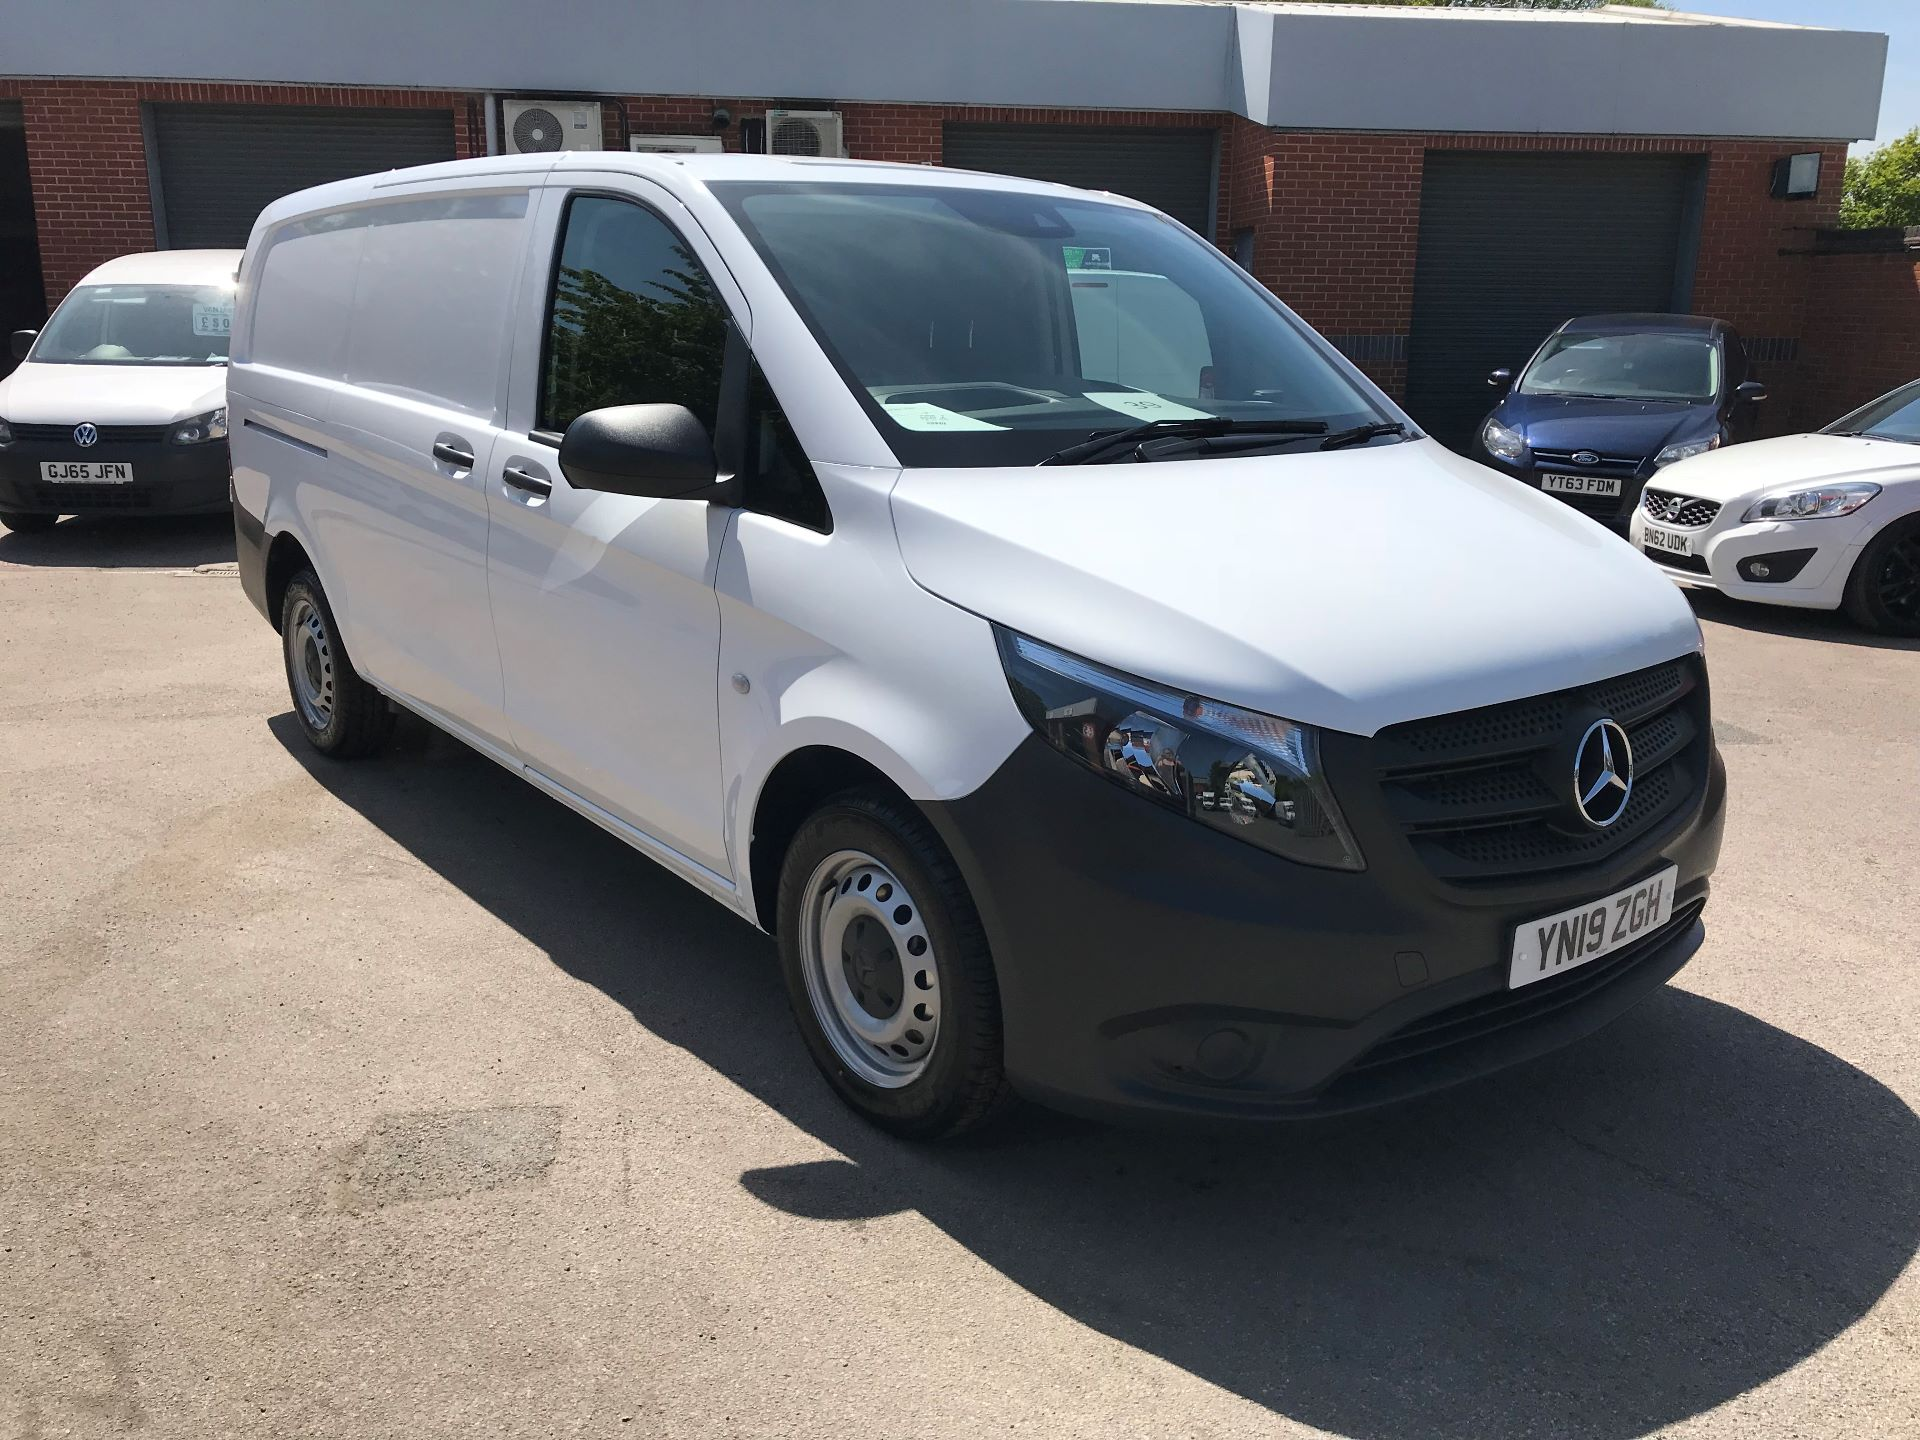 2019 Mercedes-Benz Vito 111Cdi Van Euro 6 Massive specification A/C (YN19ZGH)